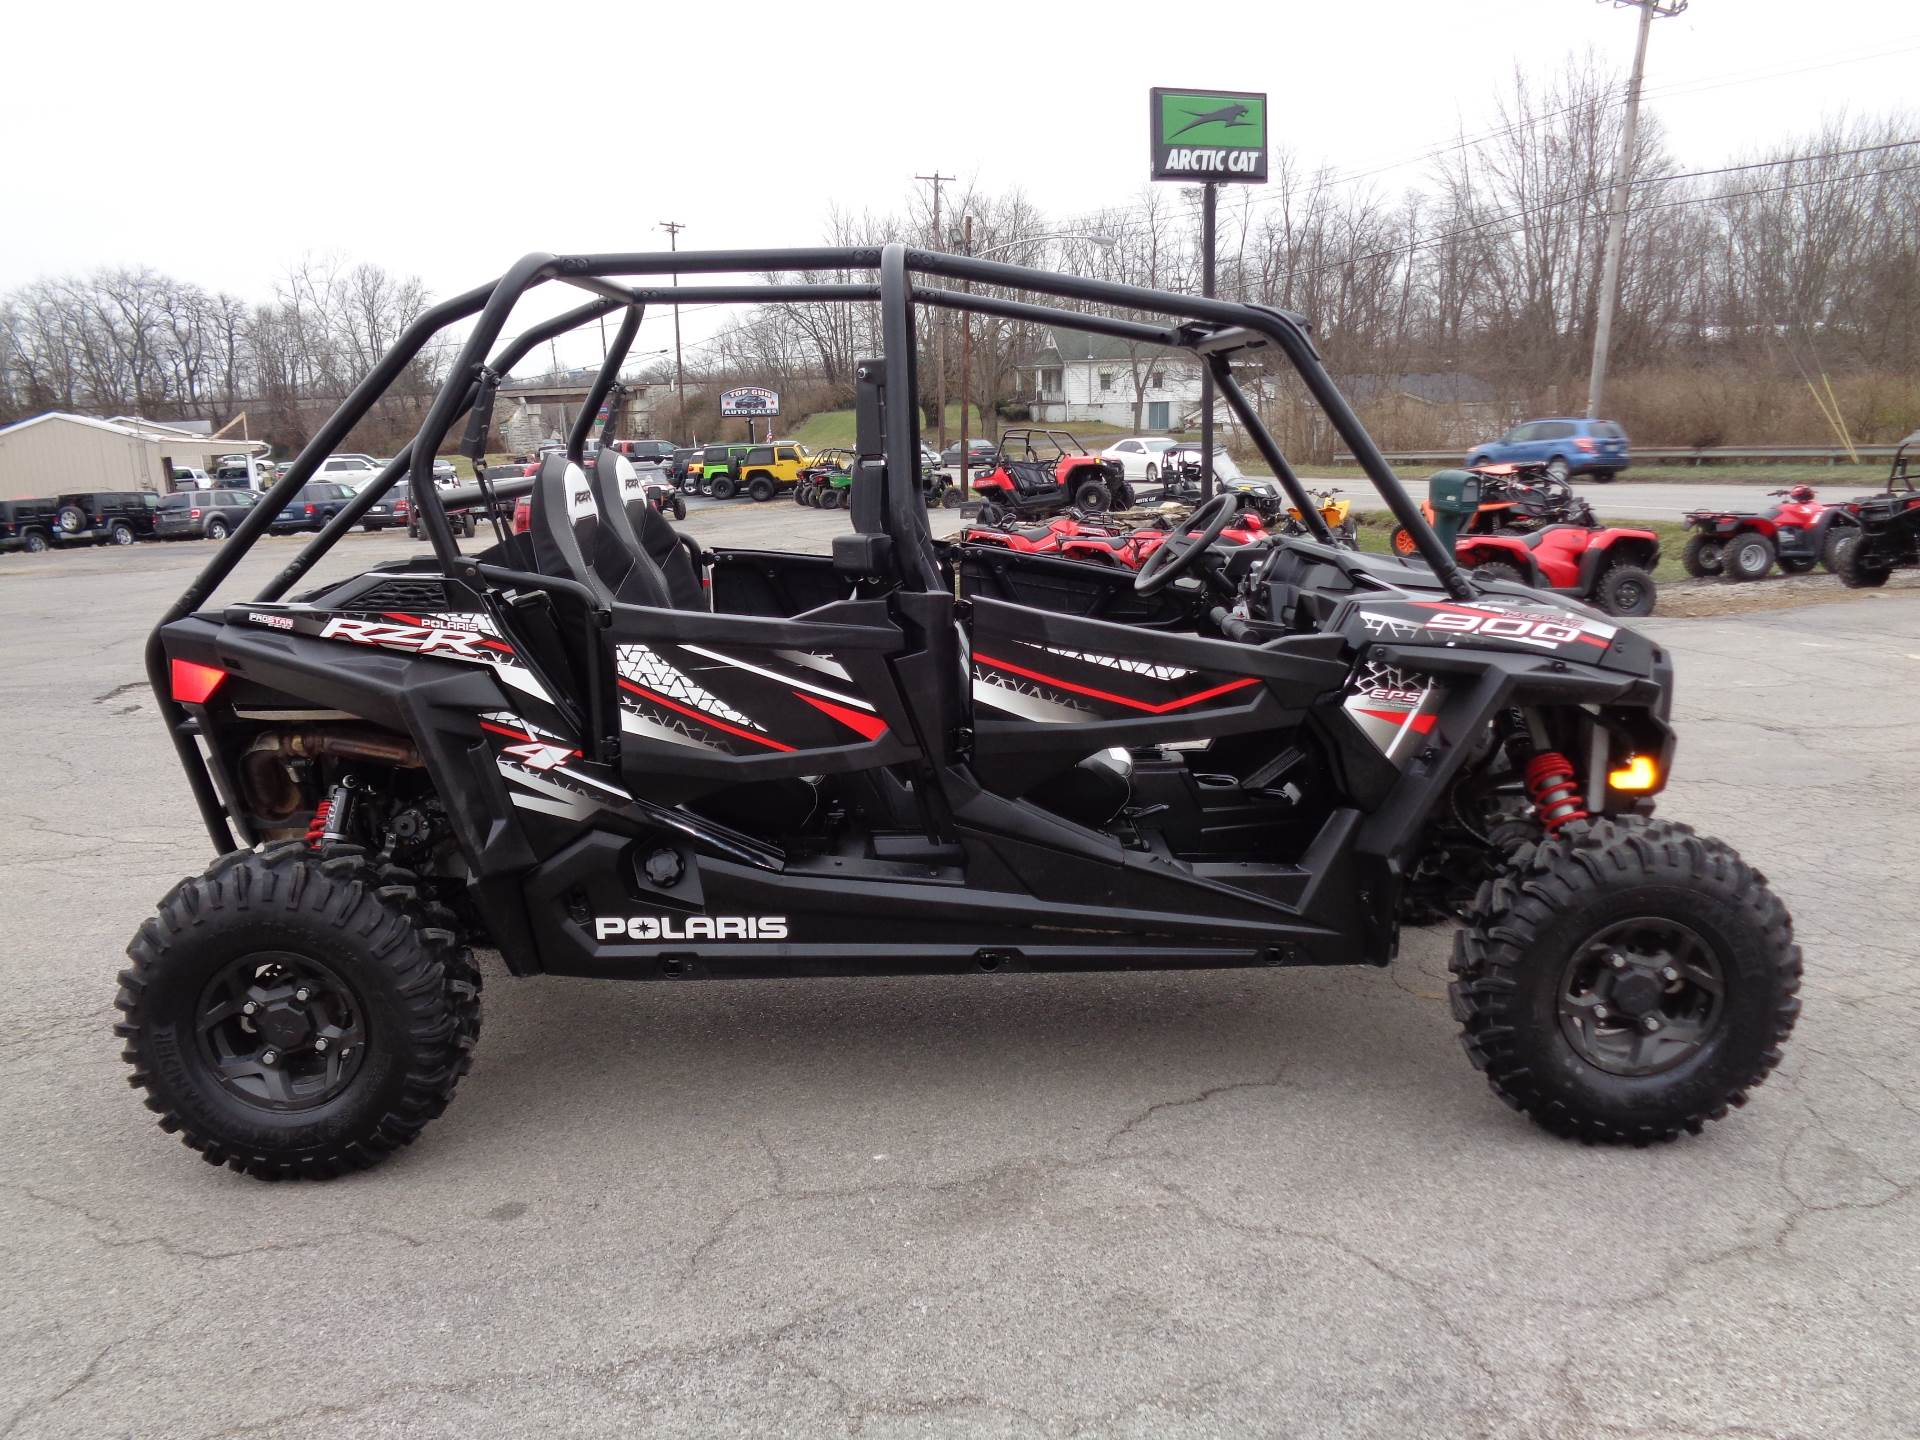 2017 polaris rzr 4 900 eps efi 4x4 auto w 124 miles used polaris rzr 4 900 eps for sale in. Black Bedroom Furniture Sets. Home Design Ideas